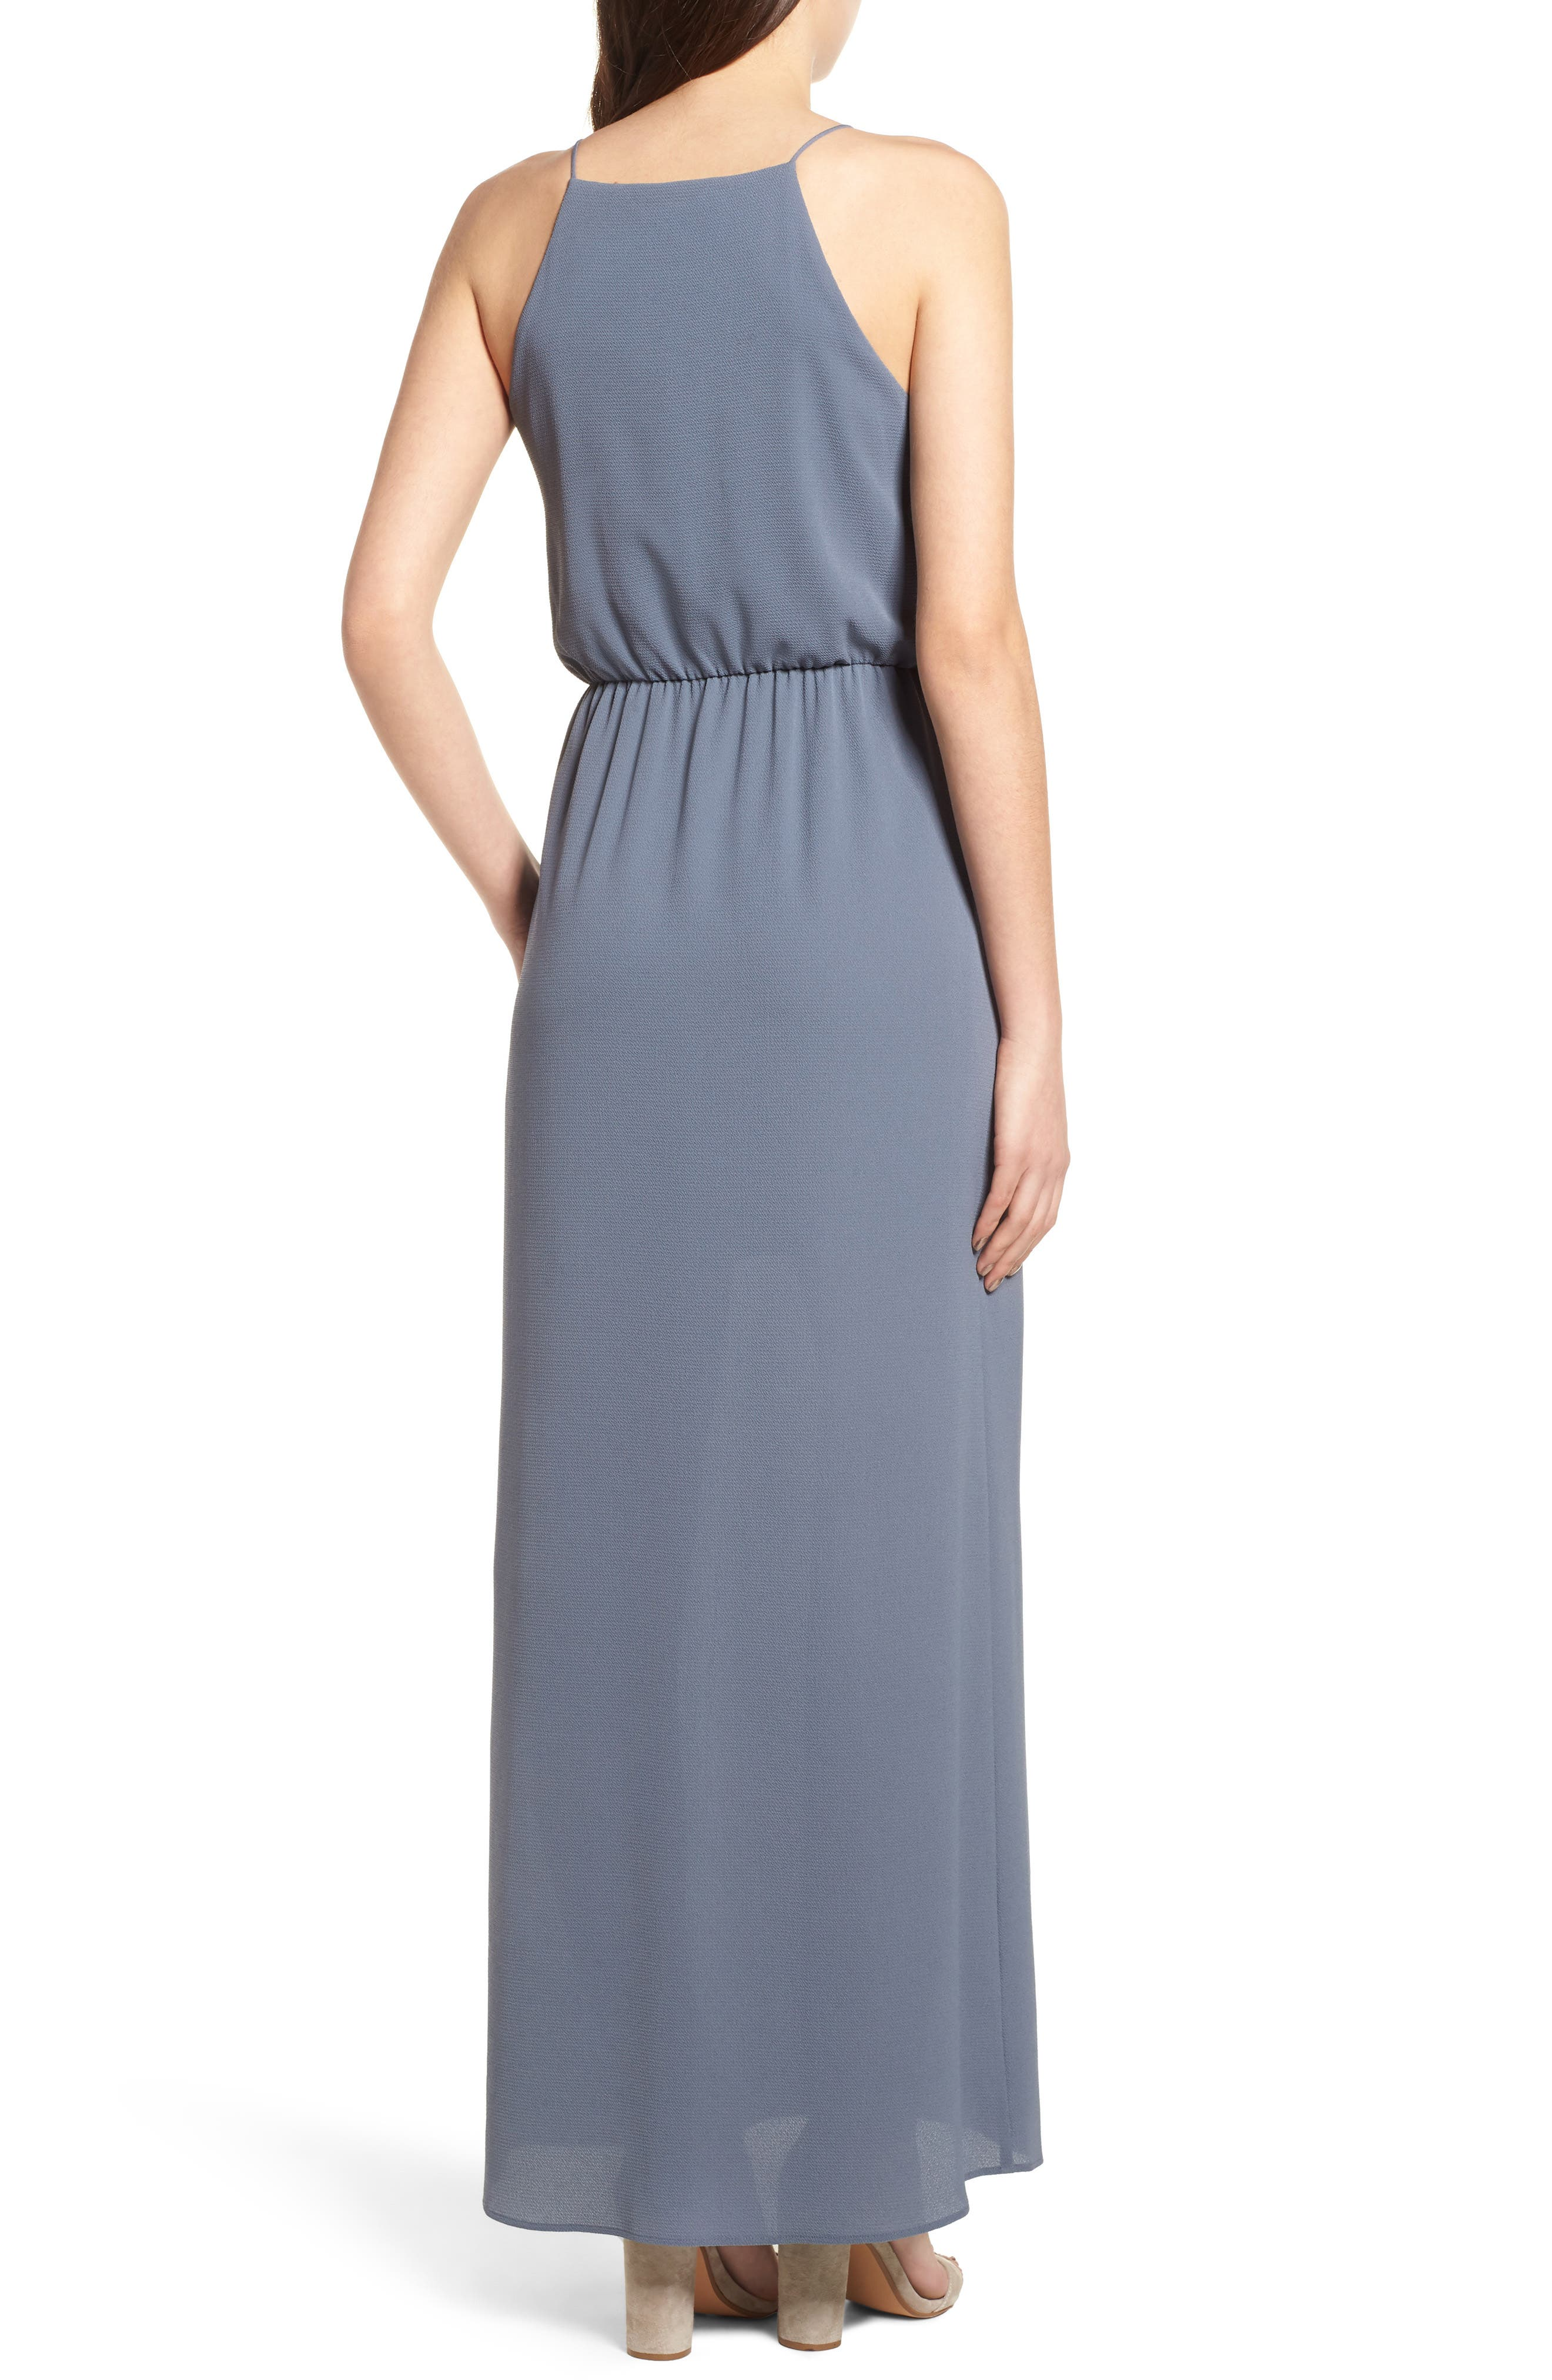 Posie Maxi Dress,                             Alternate thumbnail 2, color,                             Grey Grisaille